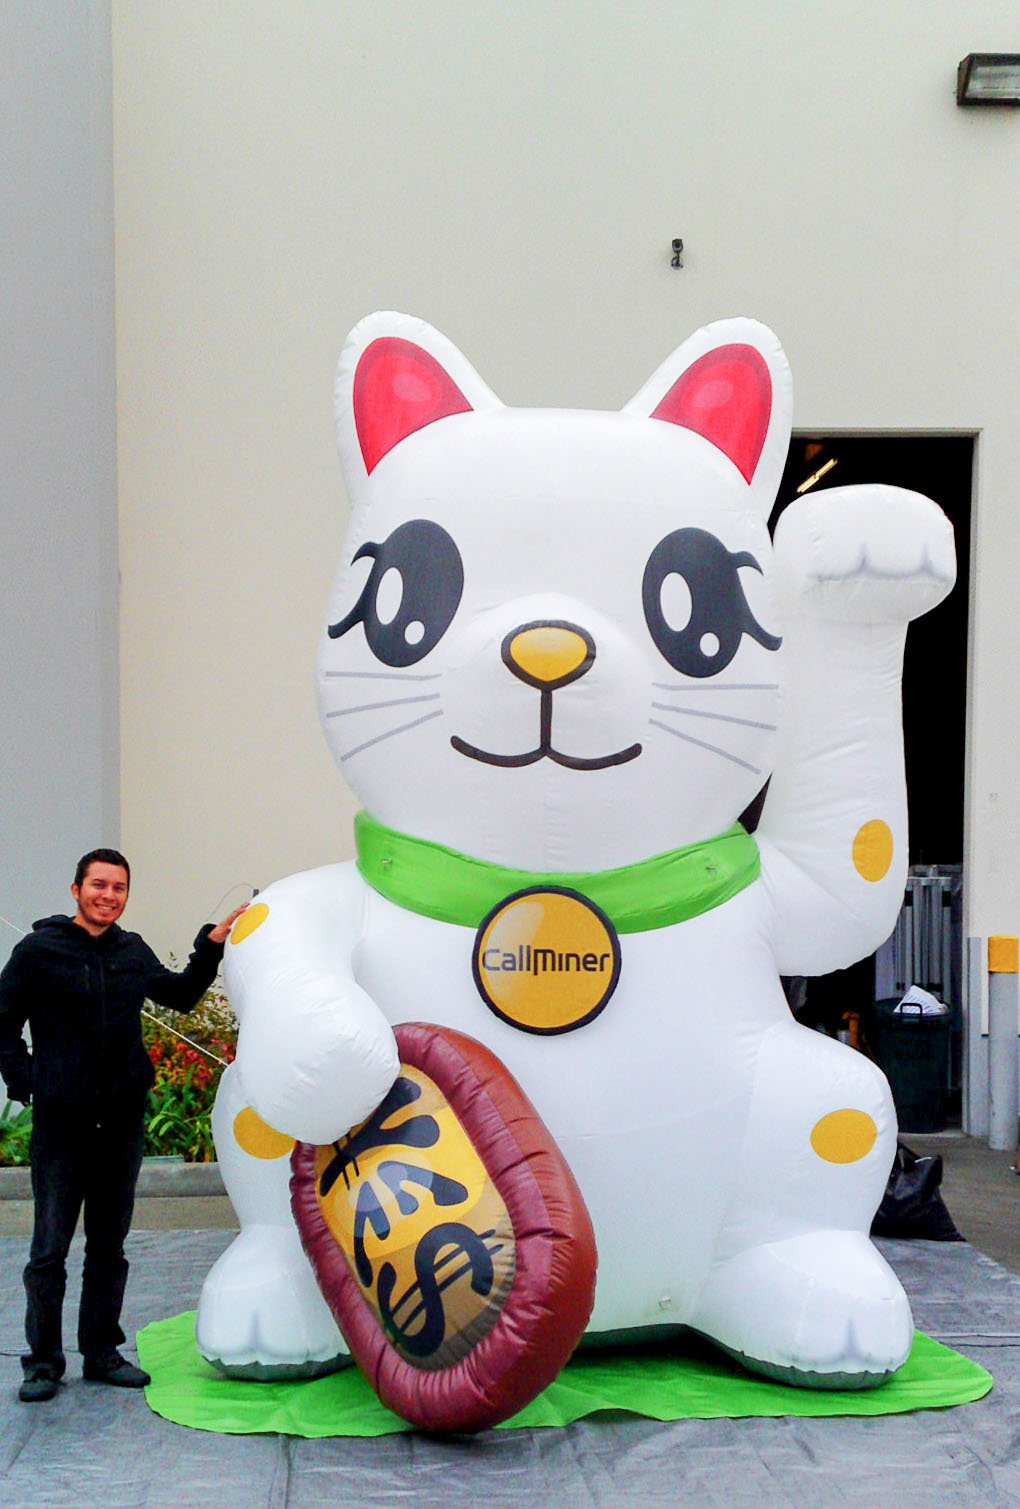 callminer-cat-inflatable